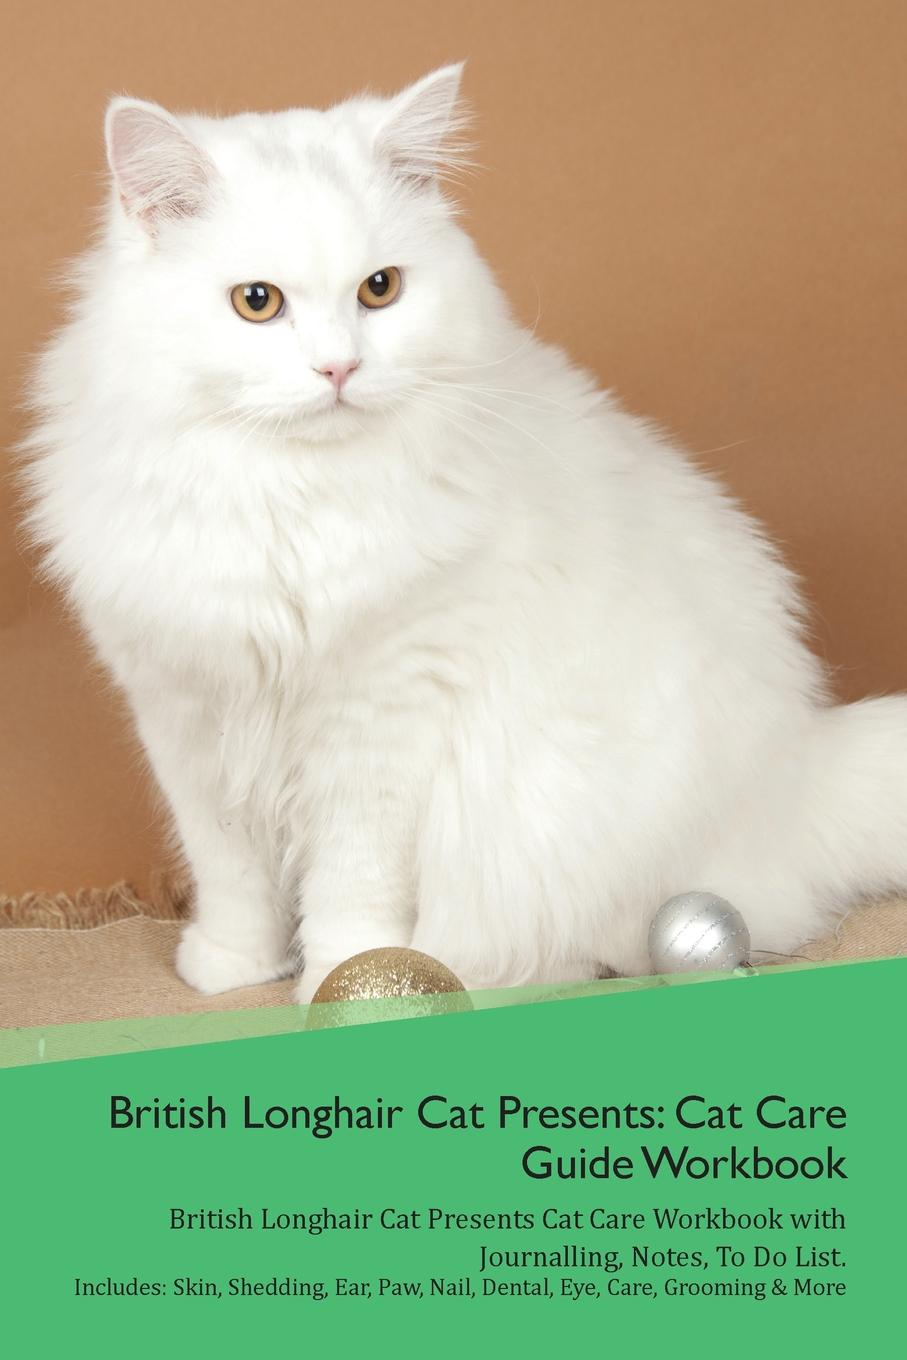 Productive Cat British Longhair Cat Presents. Cat Care Guide Workbook British Longhair Cat Presents Cat Care Workbook with Journalling, Notes, To Do List. Includes: Skin, Shedding, Ear, Paw, Nail, Dental, Eye, Care, Grooming . More cat ear headband